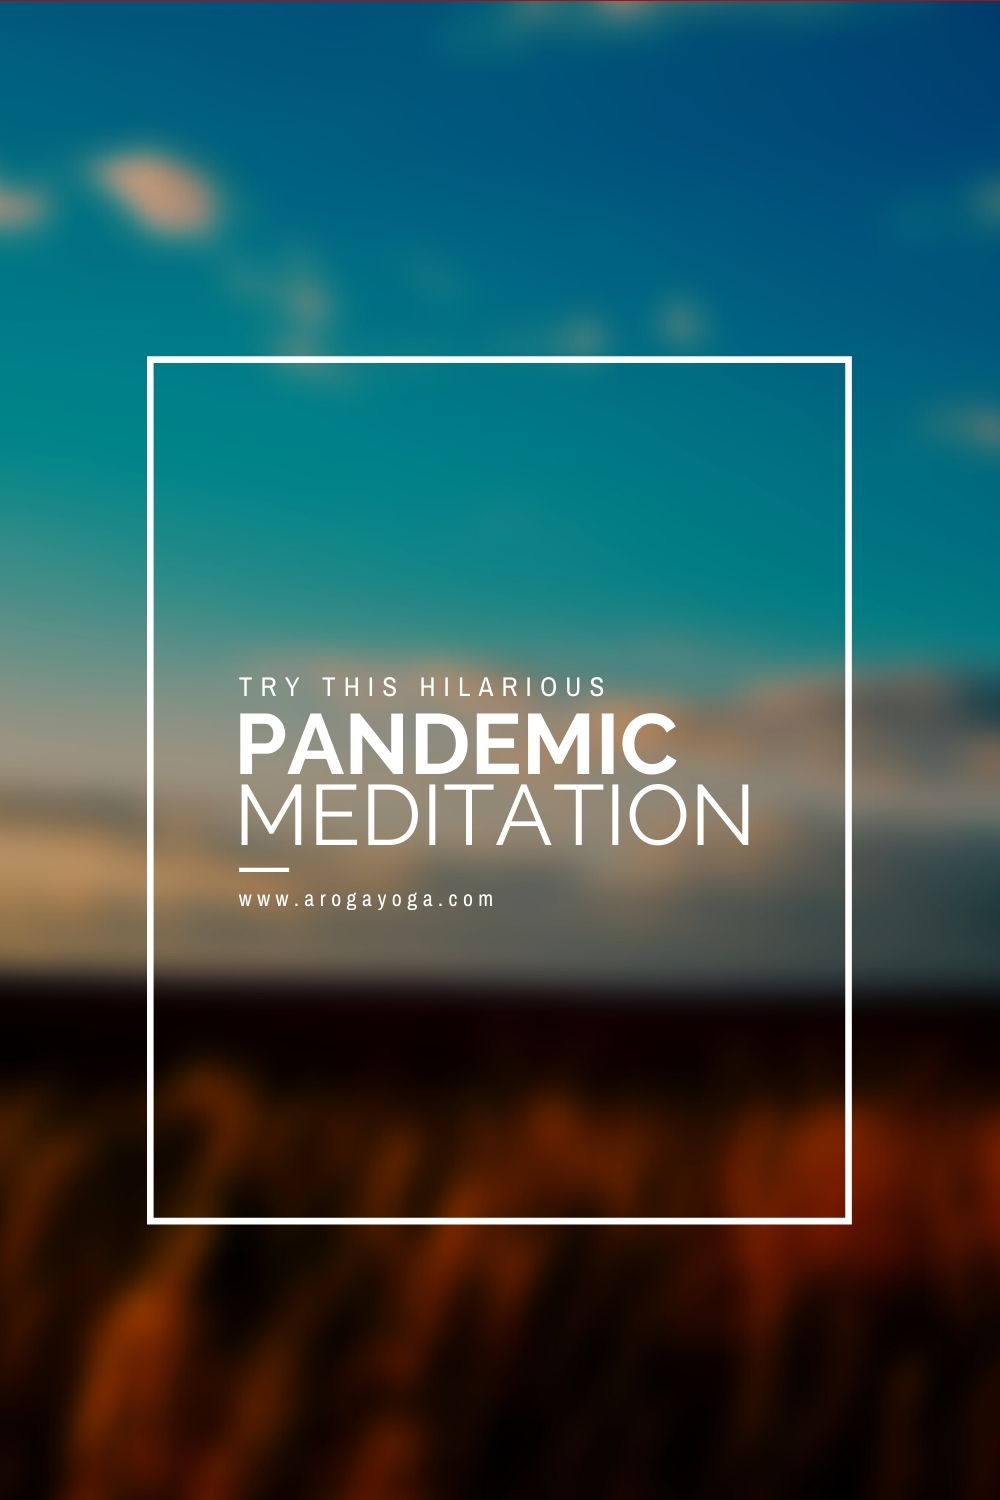 Funny pandemic meditation